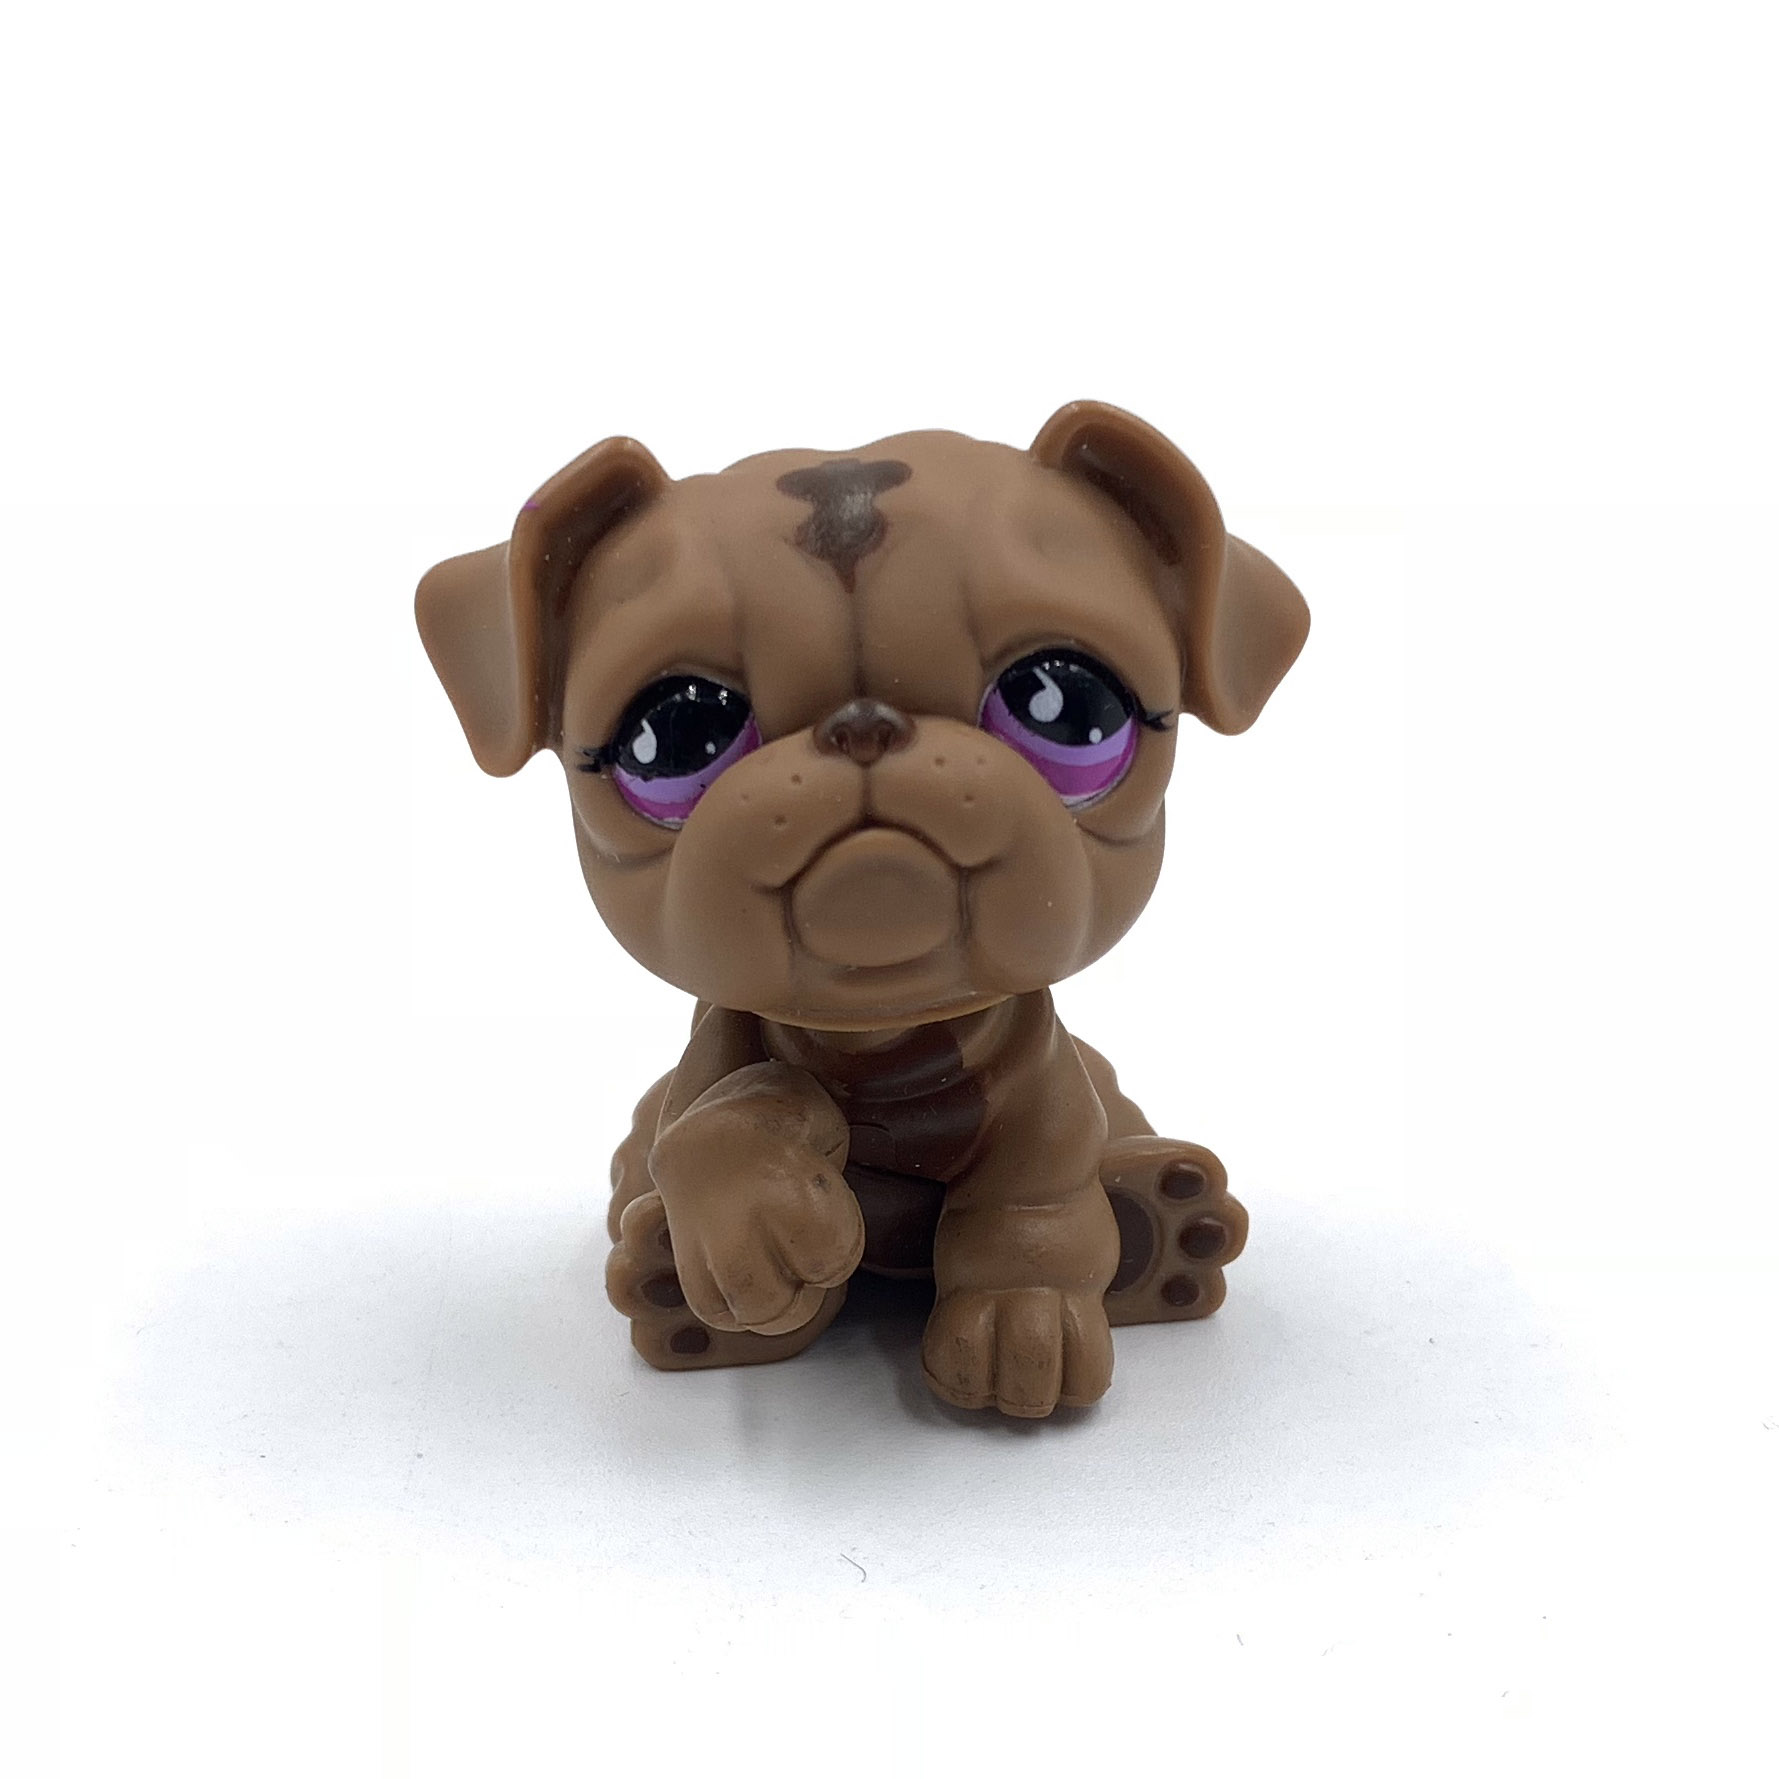 Old Pet Shop Lps Toys BULLDOG Dog 881 Bronw Dog With Pink Eyes Old Original Model Toy For Kids Christmas Gift